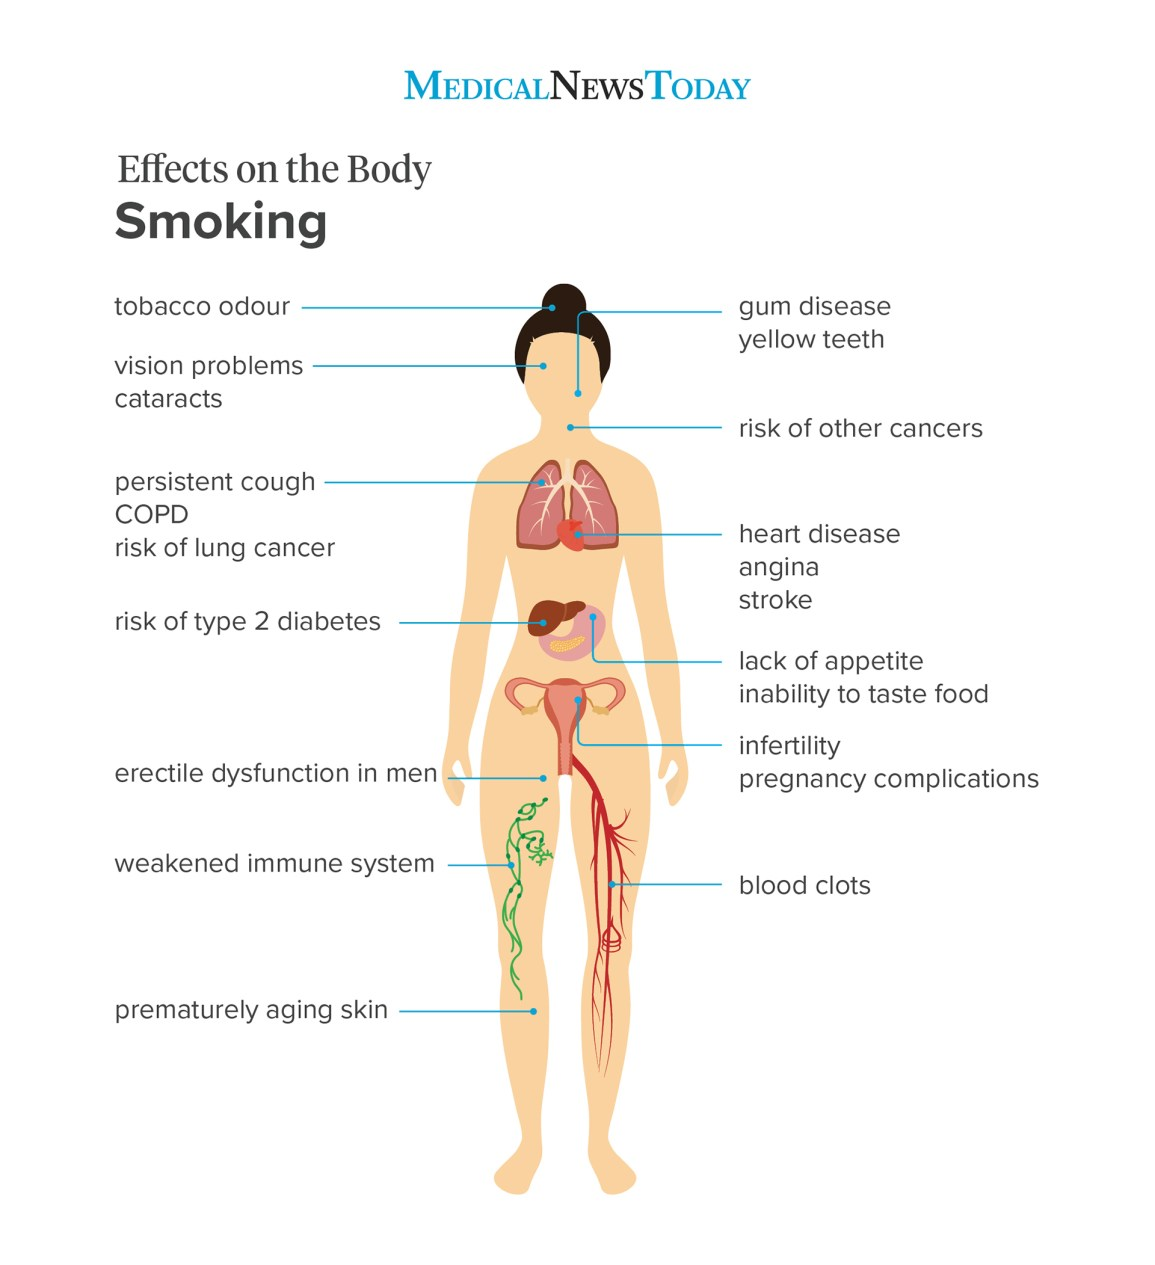 an effects on the body infographic showing the effects on the body of smoking